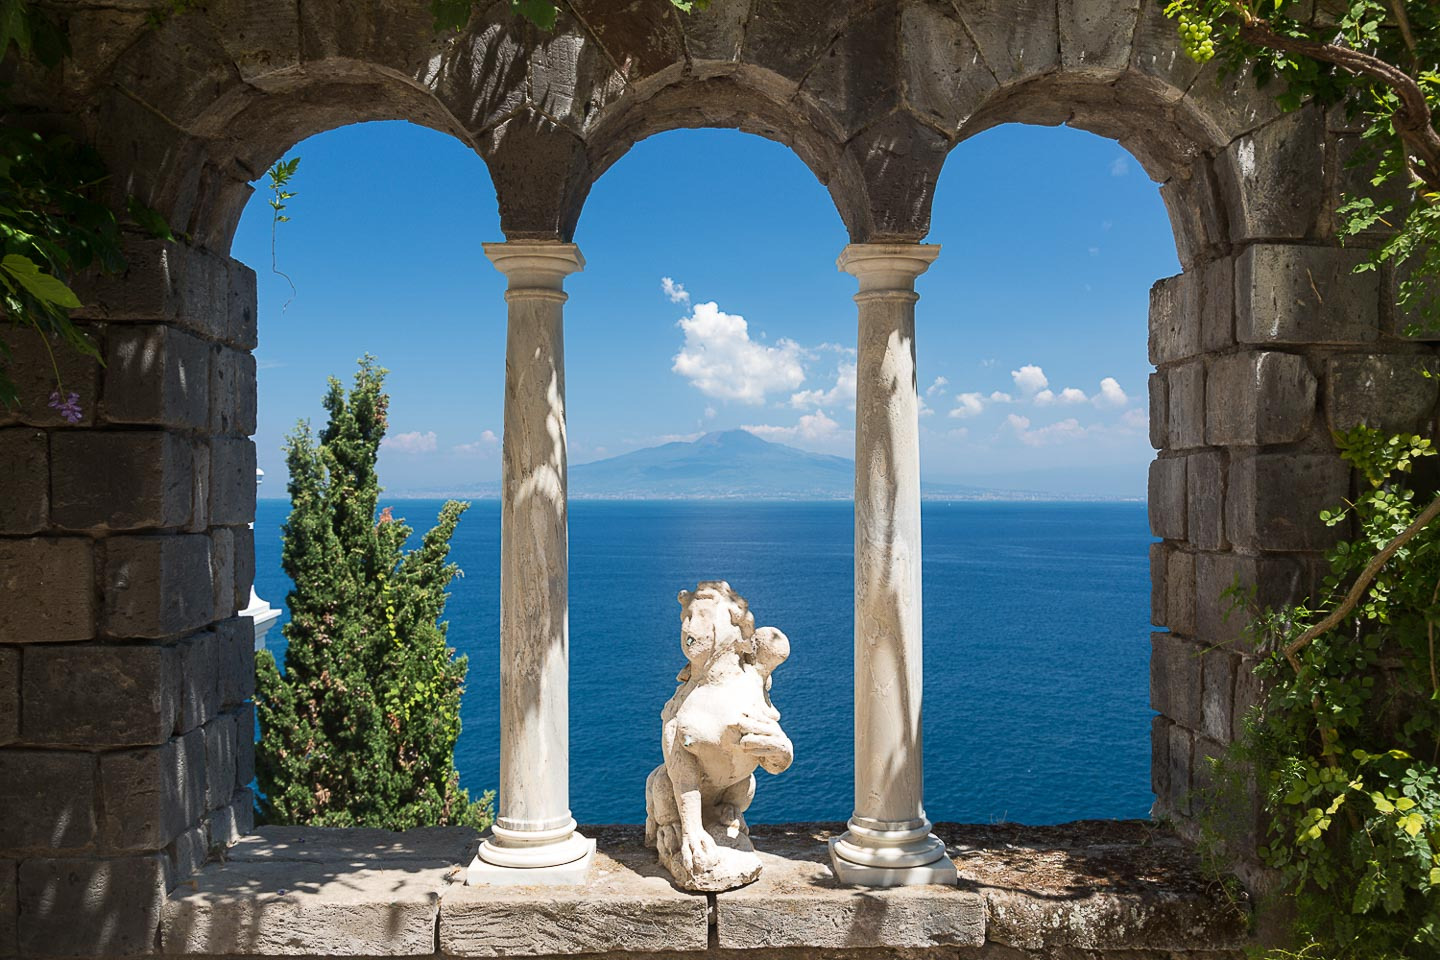 Villa Astor Amalfi paradise restored house luxury accommodation rental Sorrento Medditerranean sea view garden window view Mount Vesuvius Capri 22 1